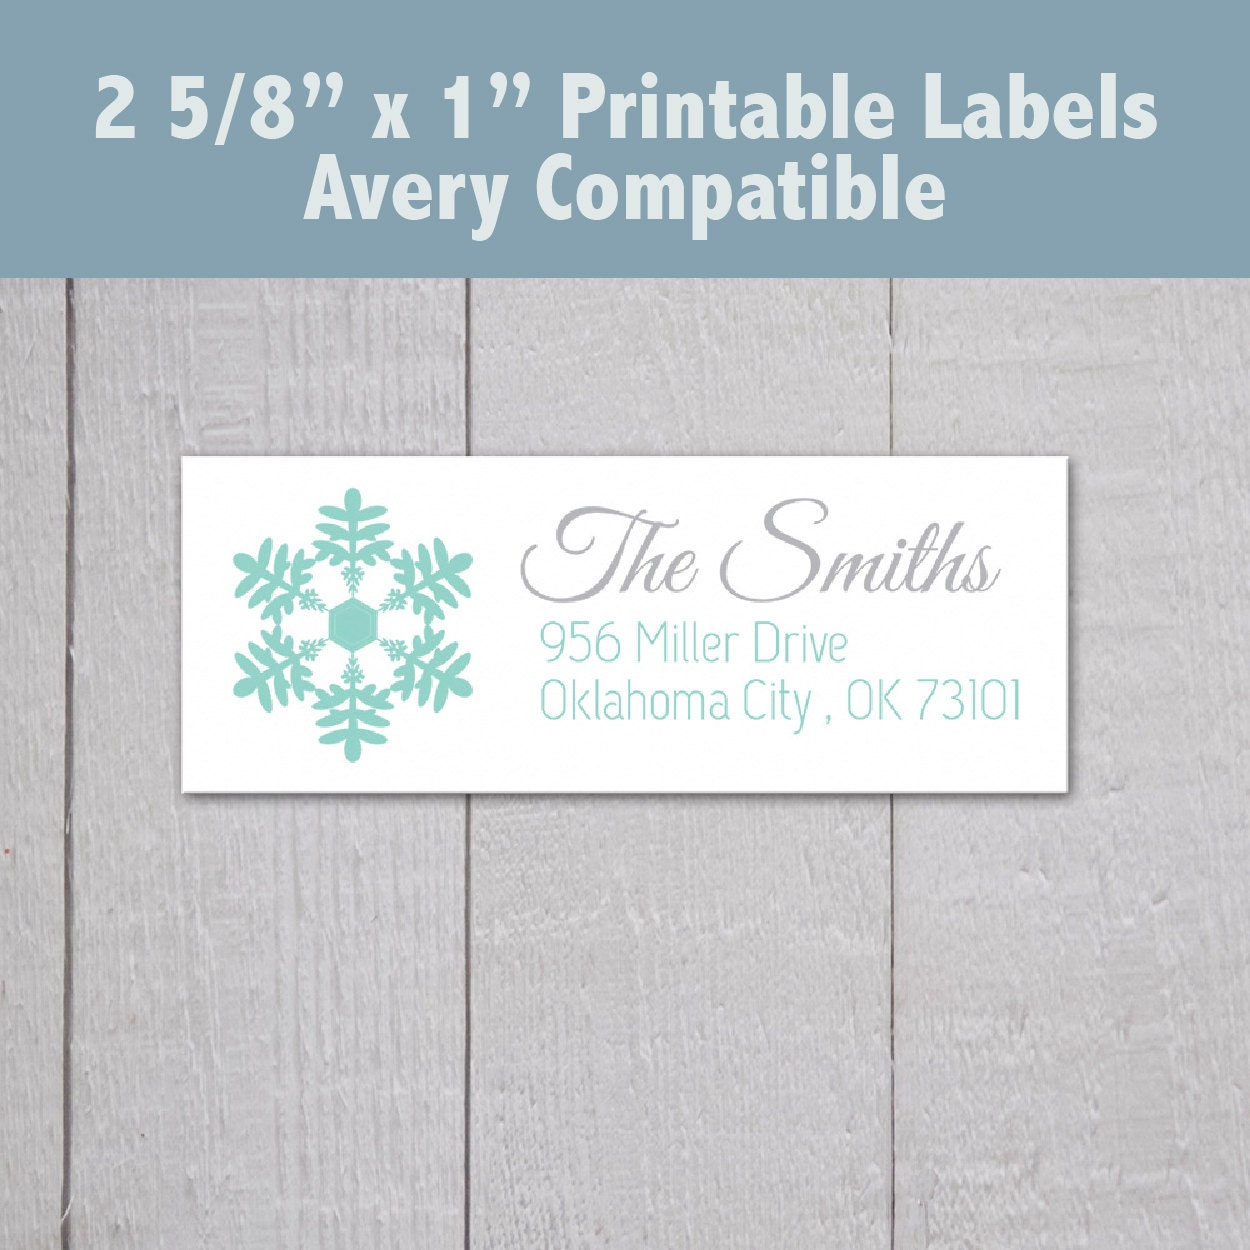 It's just a picture of Current Printable Address Labels Free